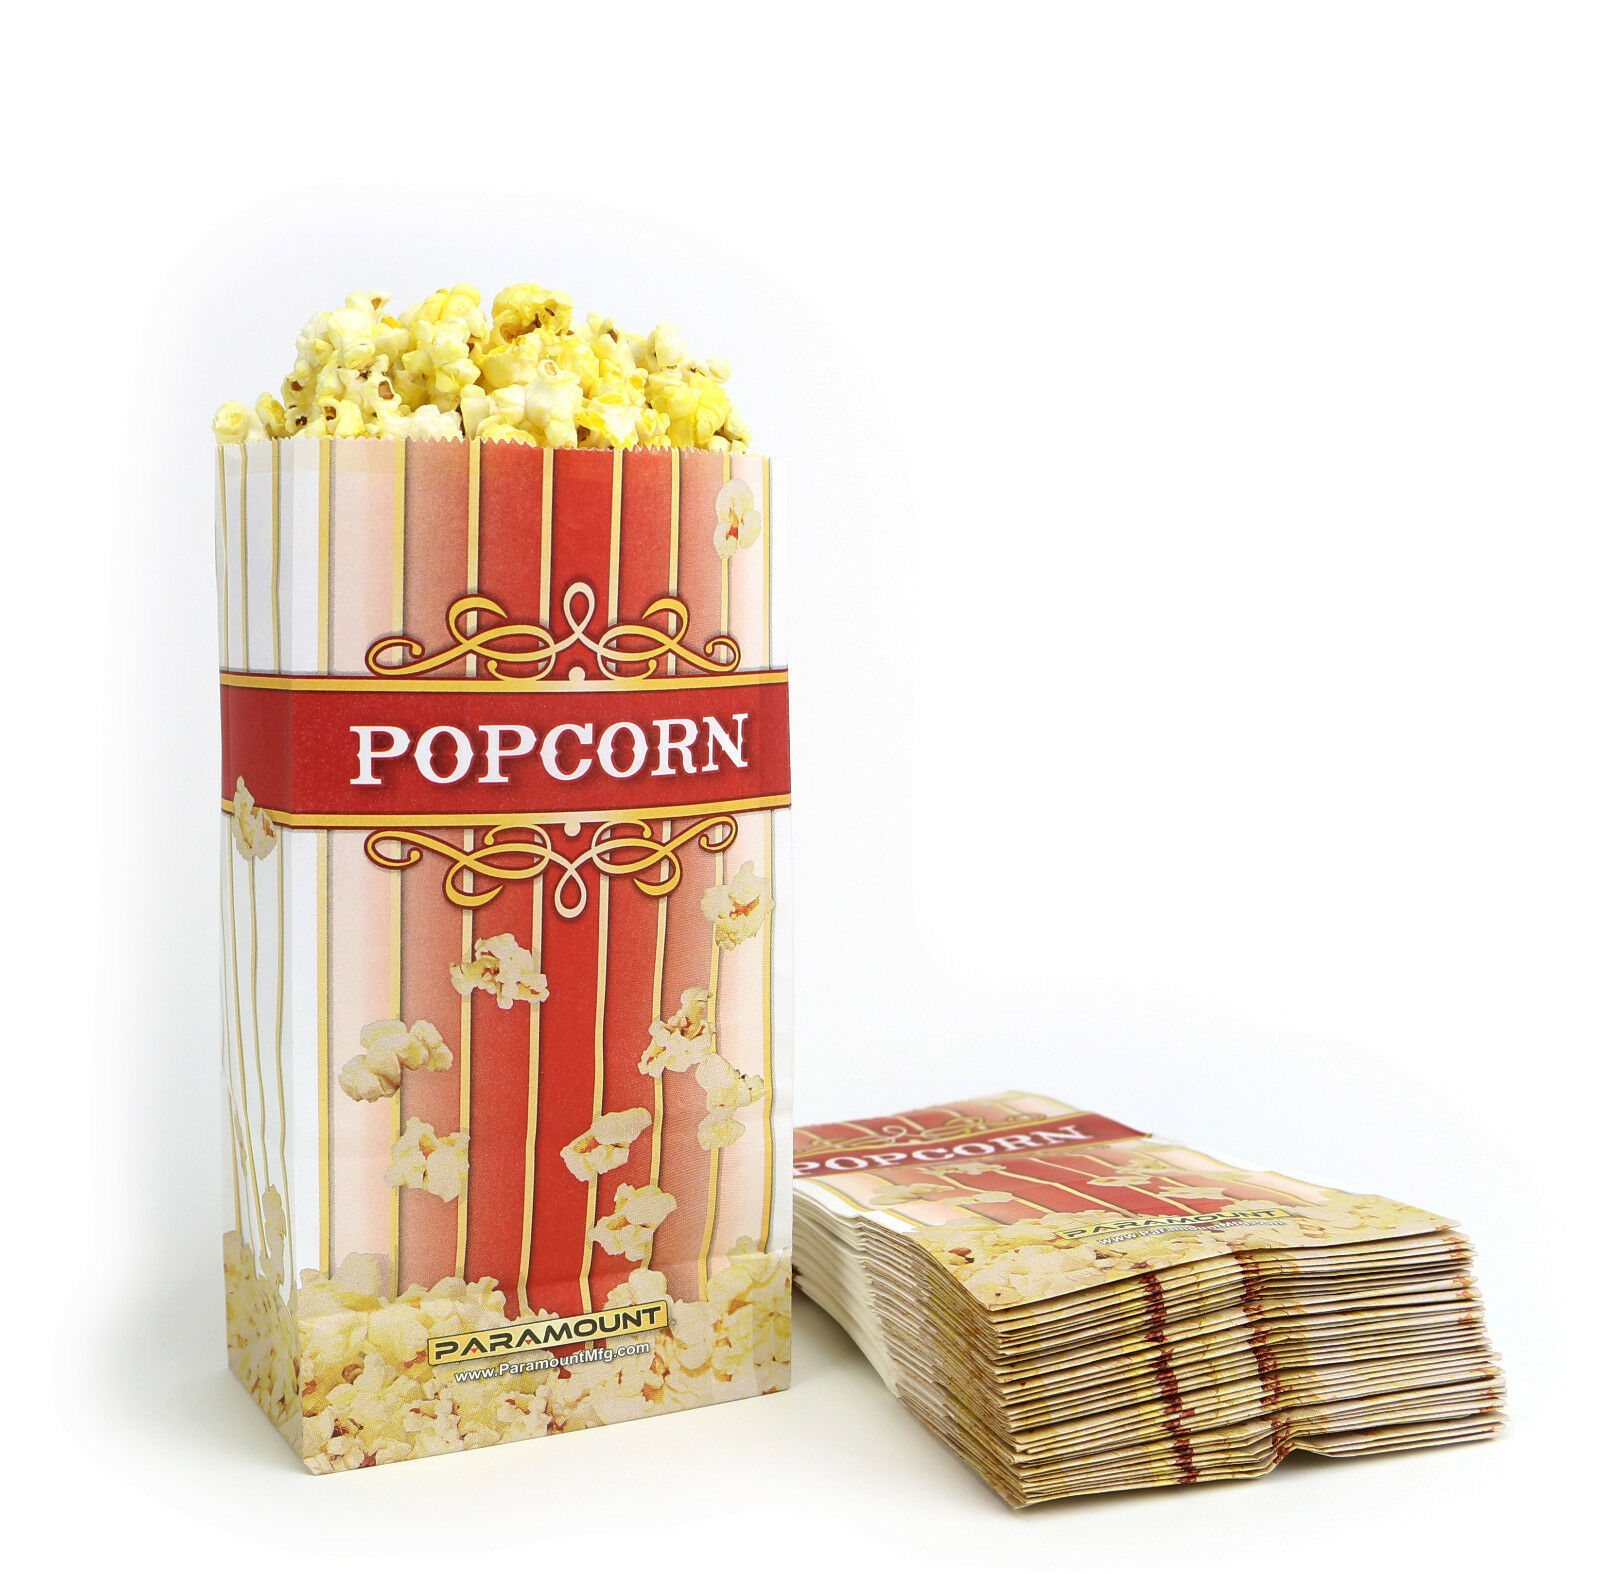 100-popcorn-serving-bags-small-standalone-flat-bottom-paper-bag-style